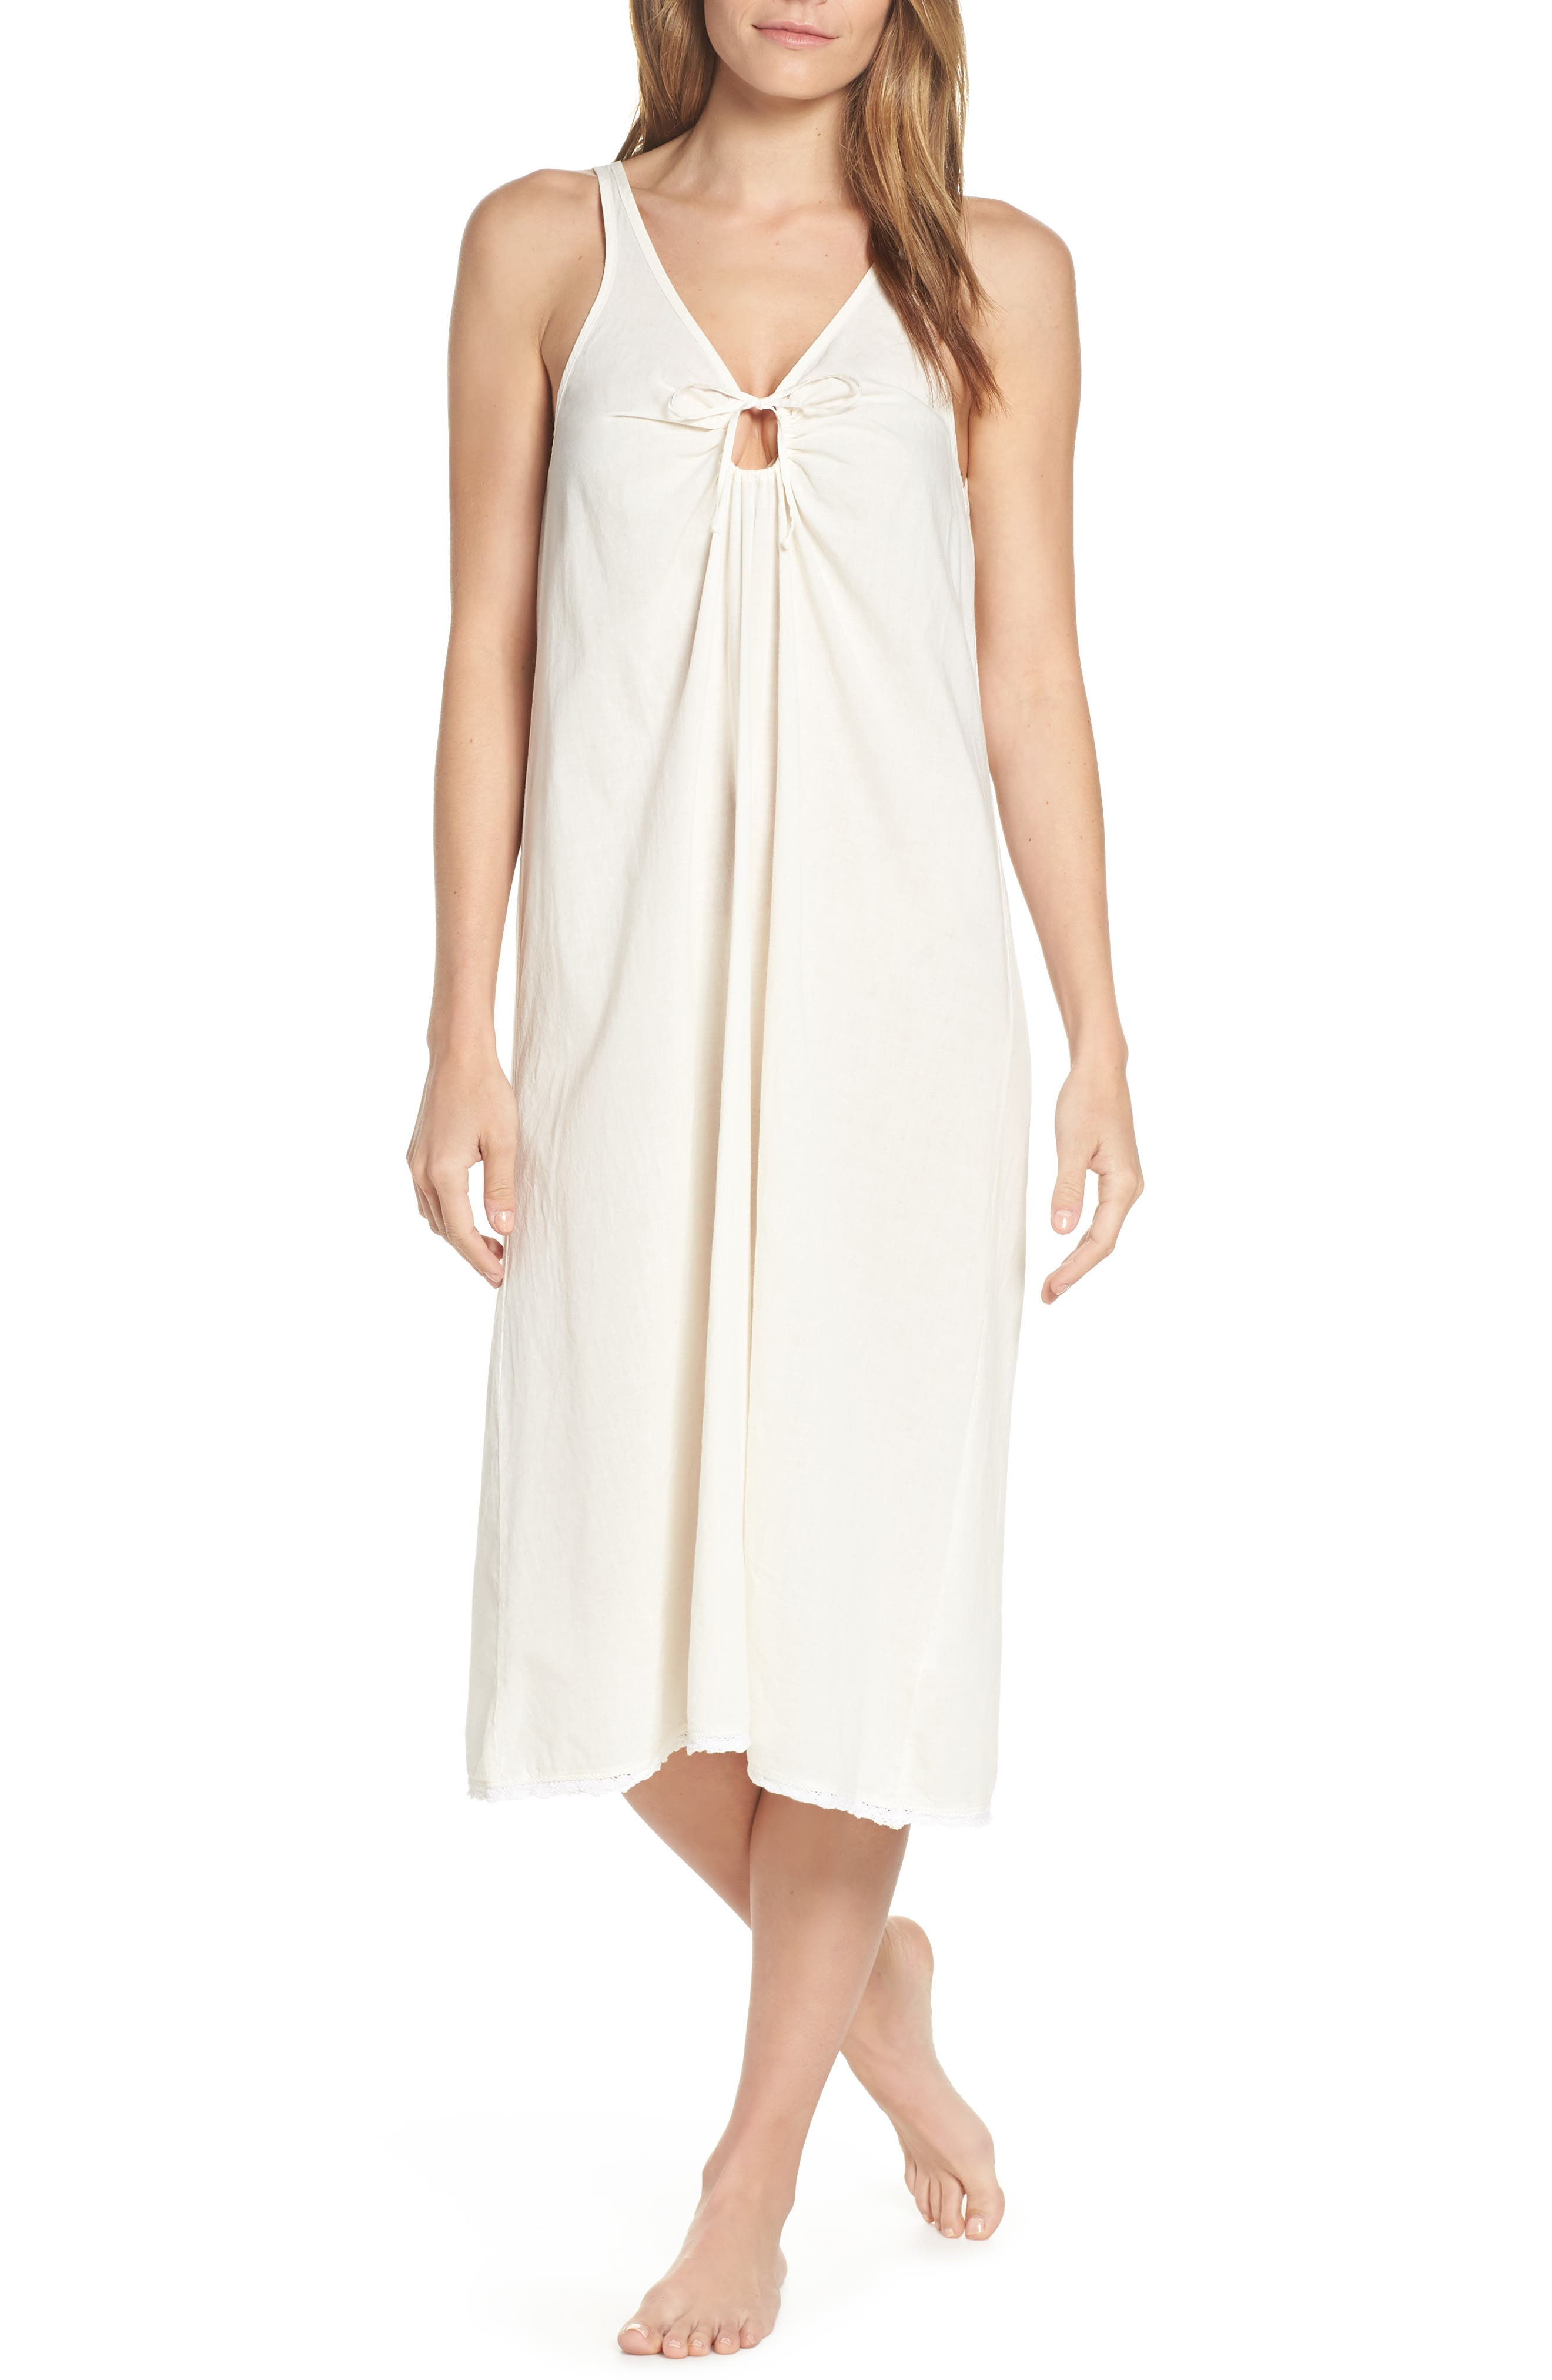 Lacausa Wendy Nightgown, Ivory